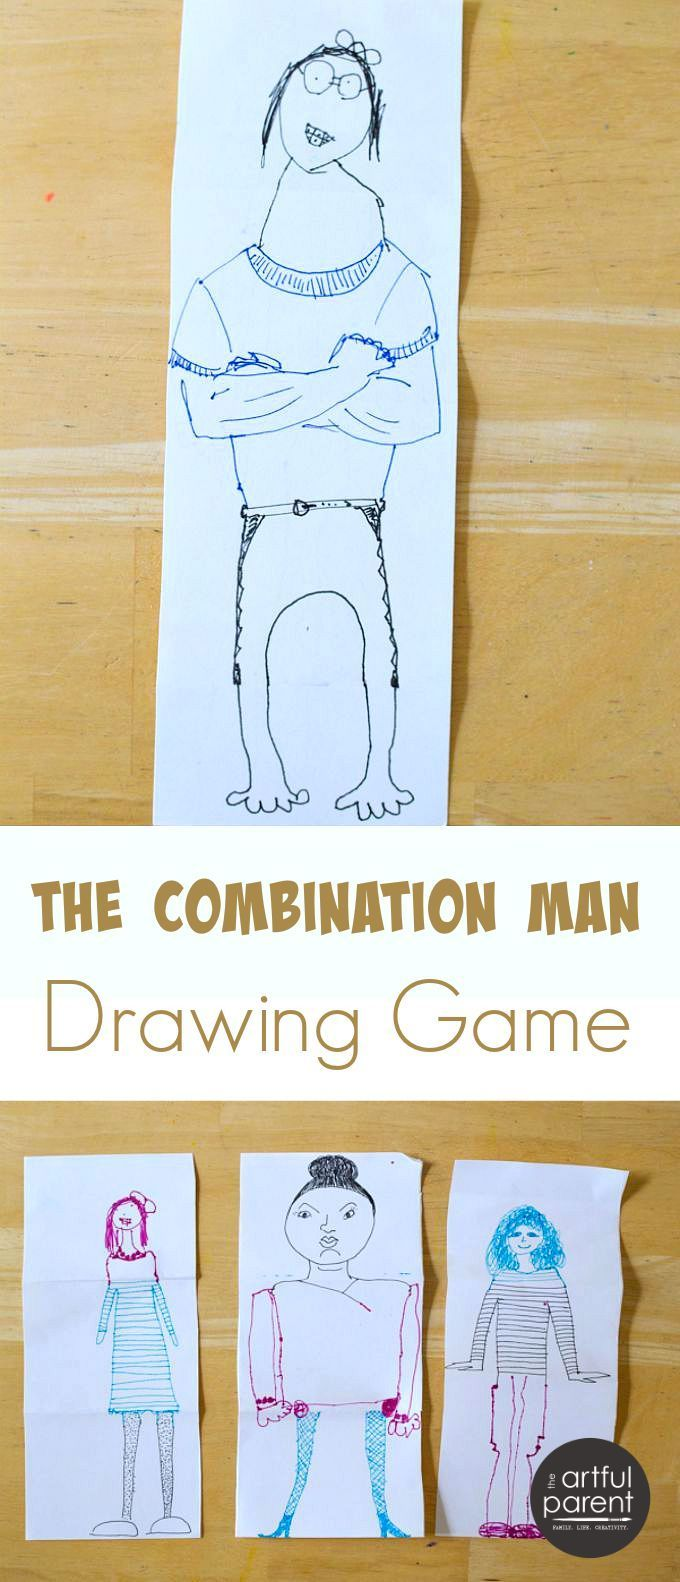 The Exquisite Corpse Drawing Game for Kids and Adults